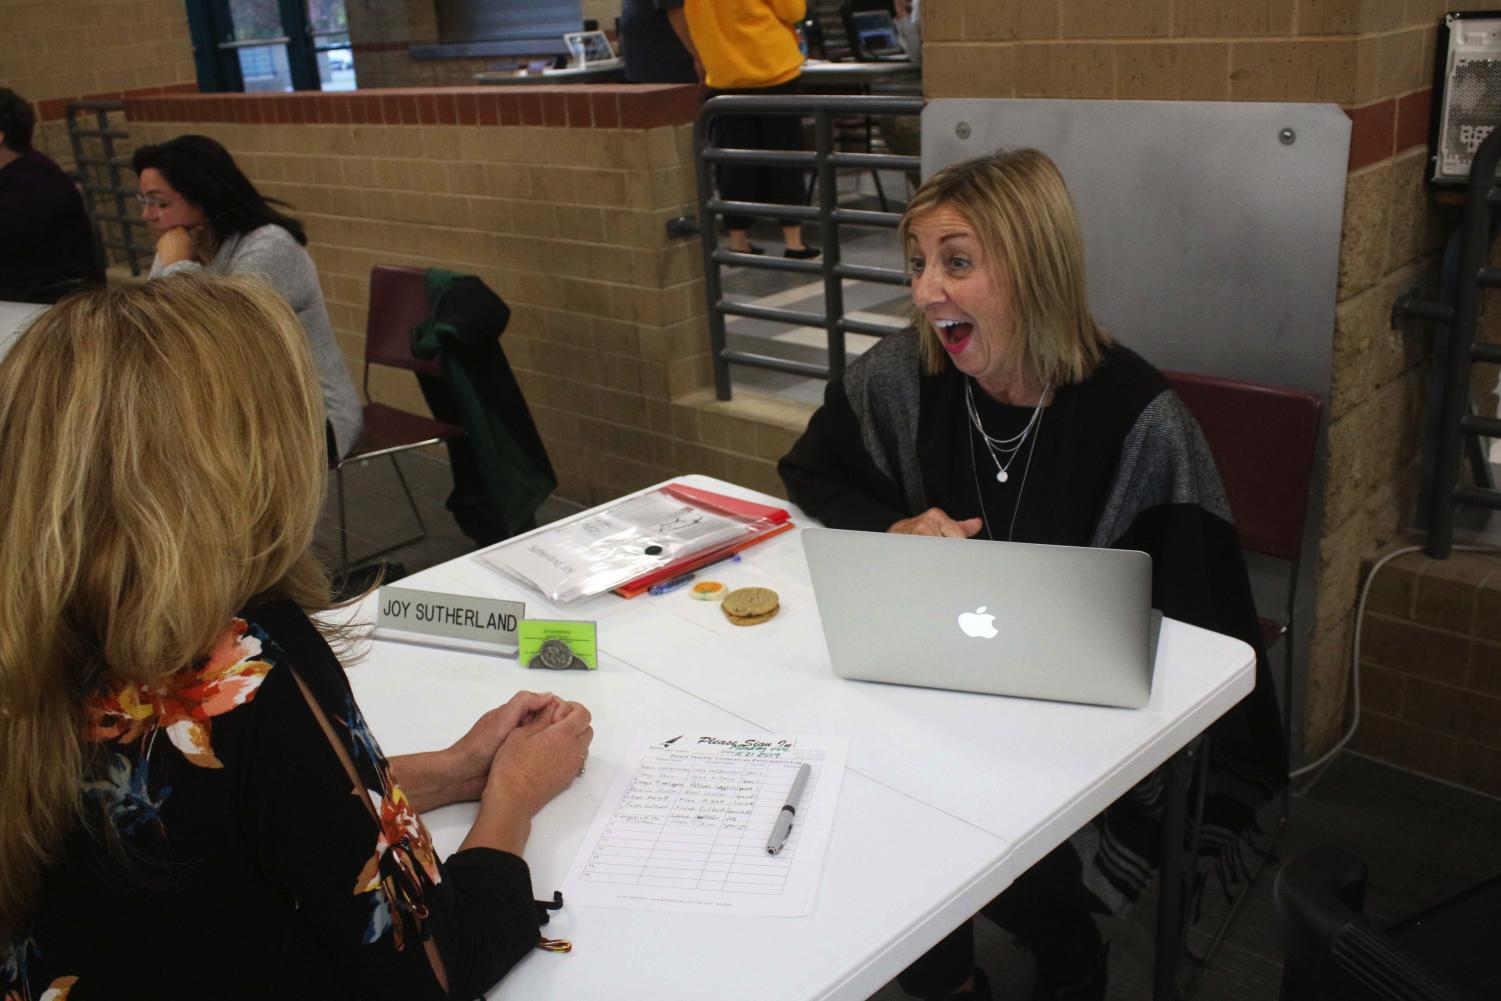 Spanish teacher Joy Sutherland talks to a parent during fall conferences on Oct. 21.